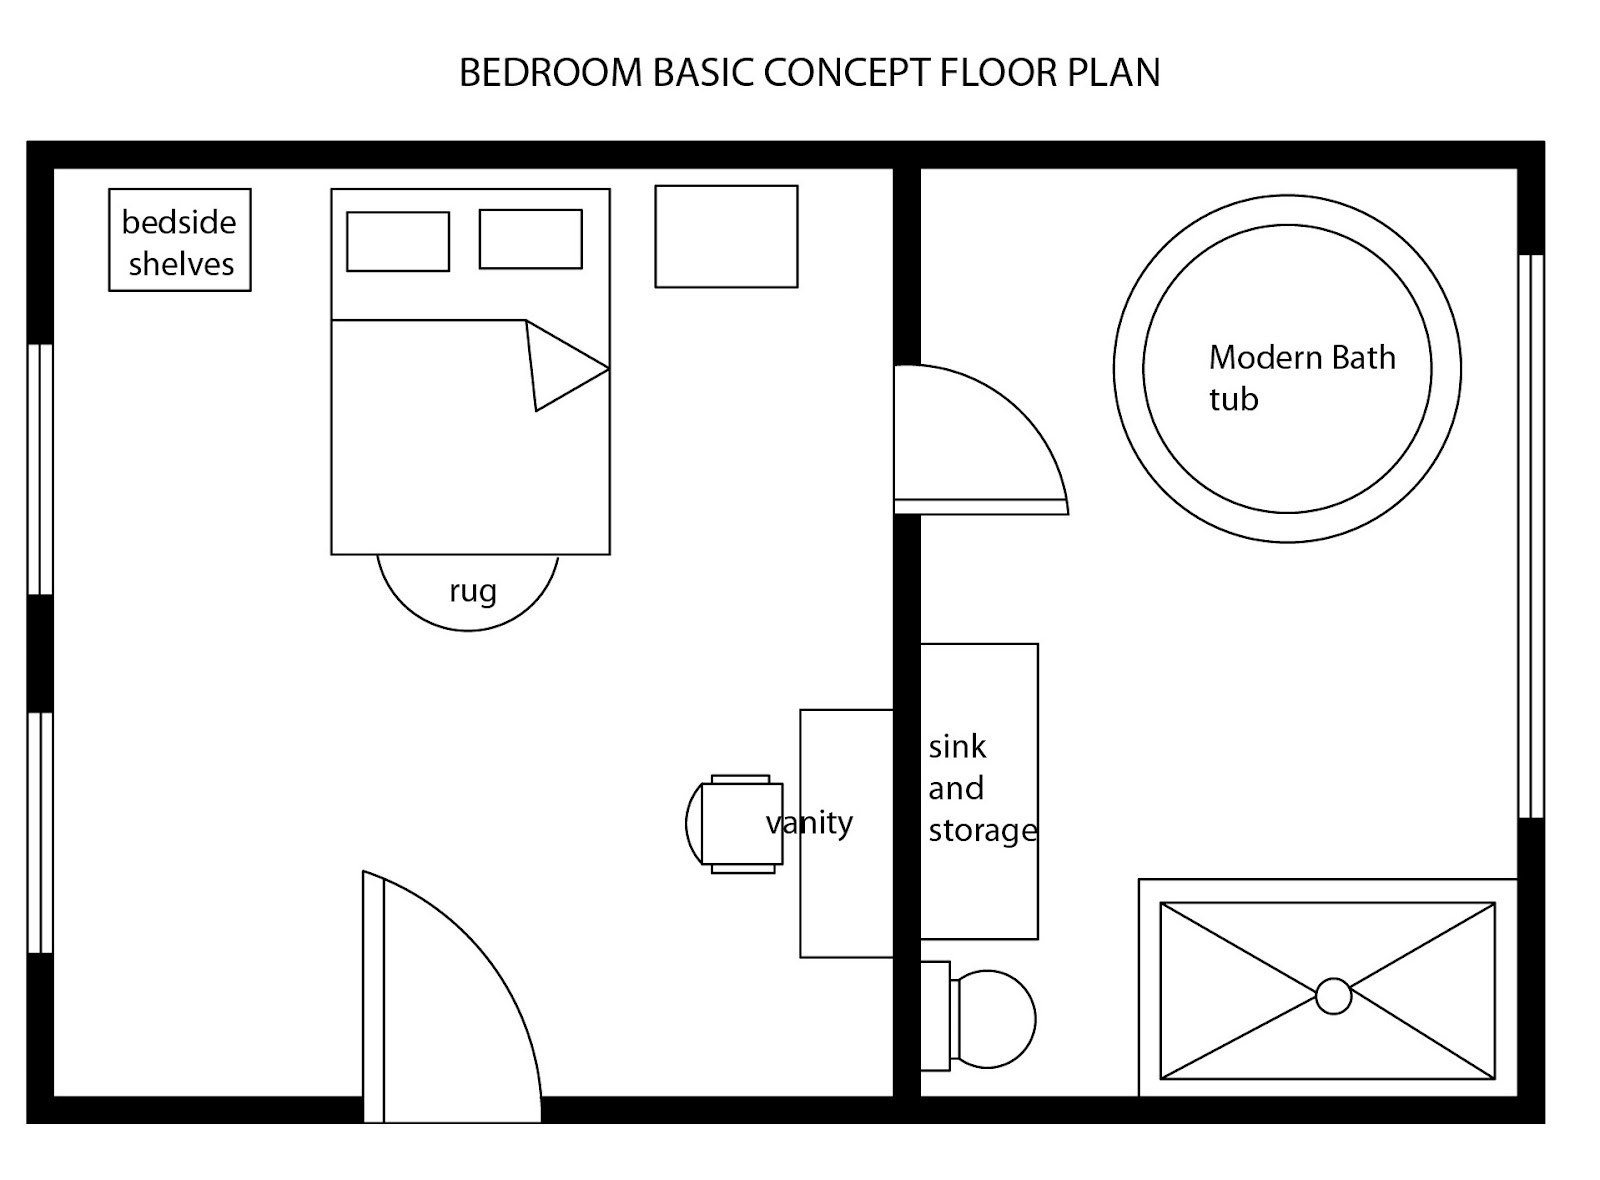 Interior design decor modern bedroom basic floor plan for Simple one room house plans